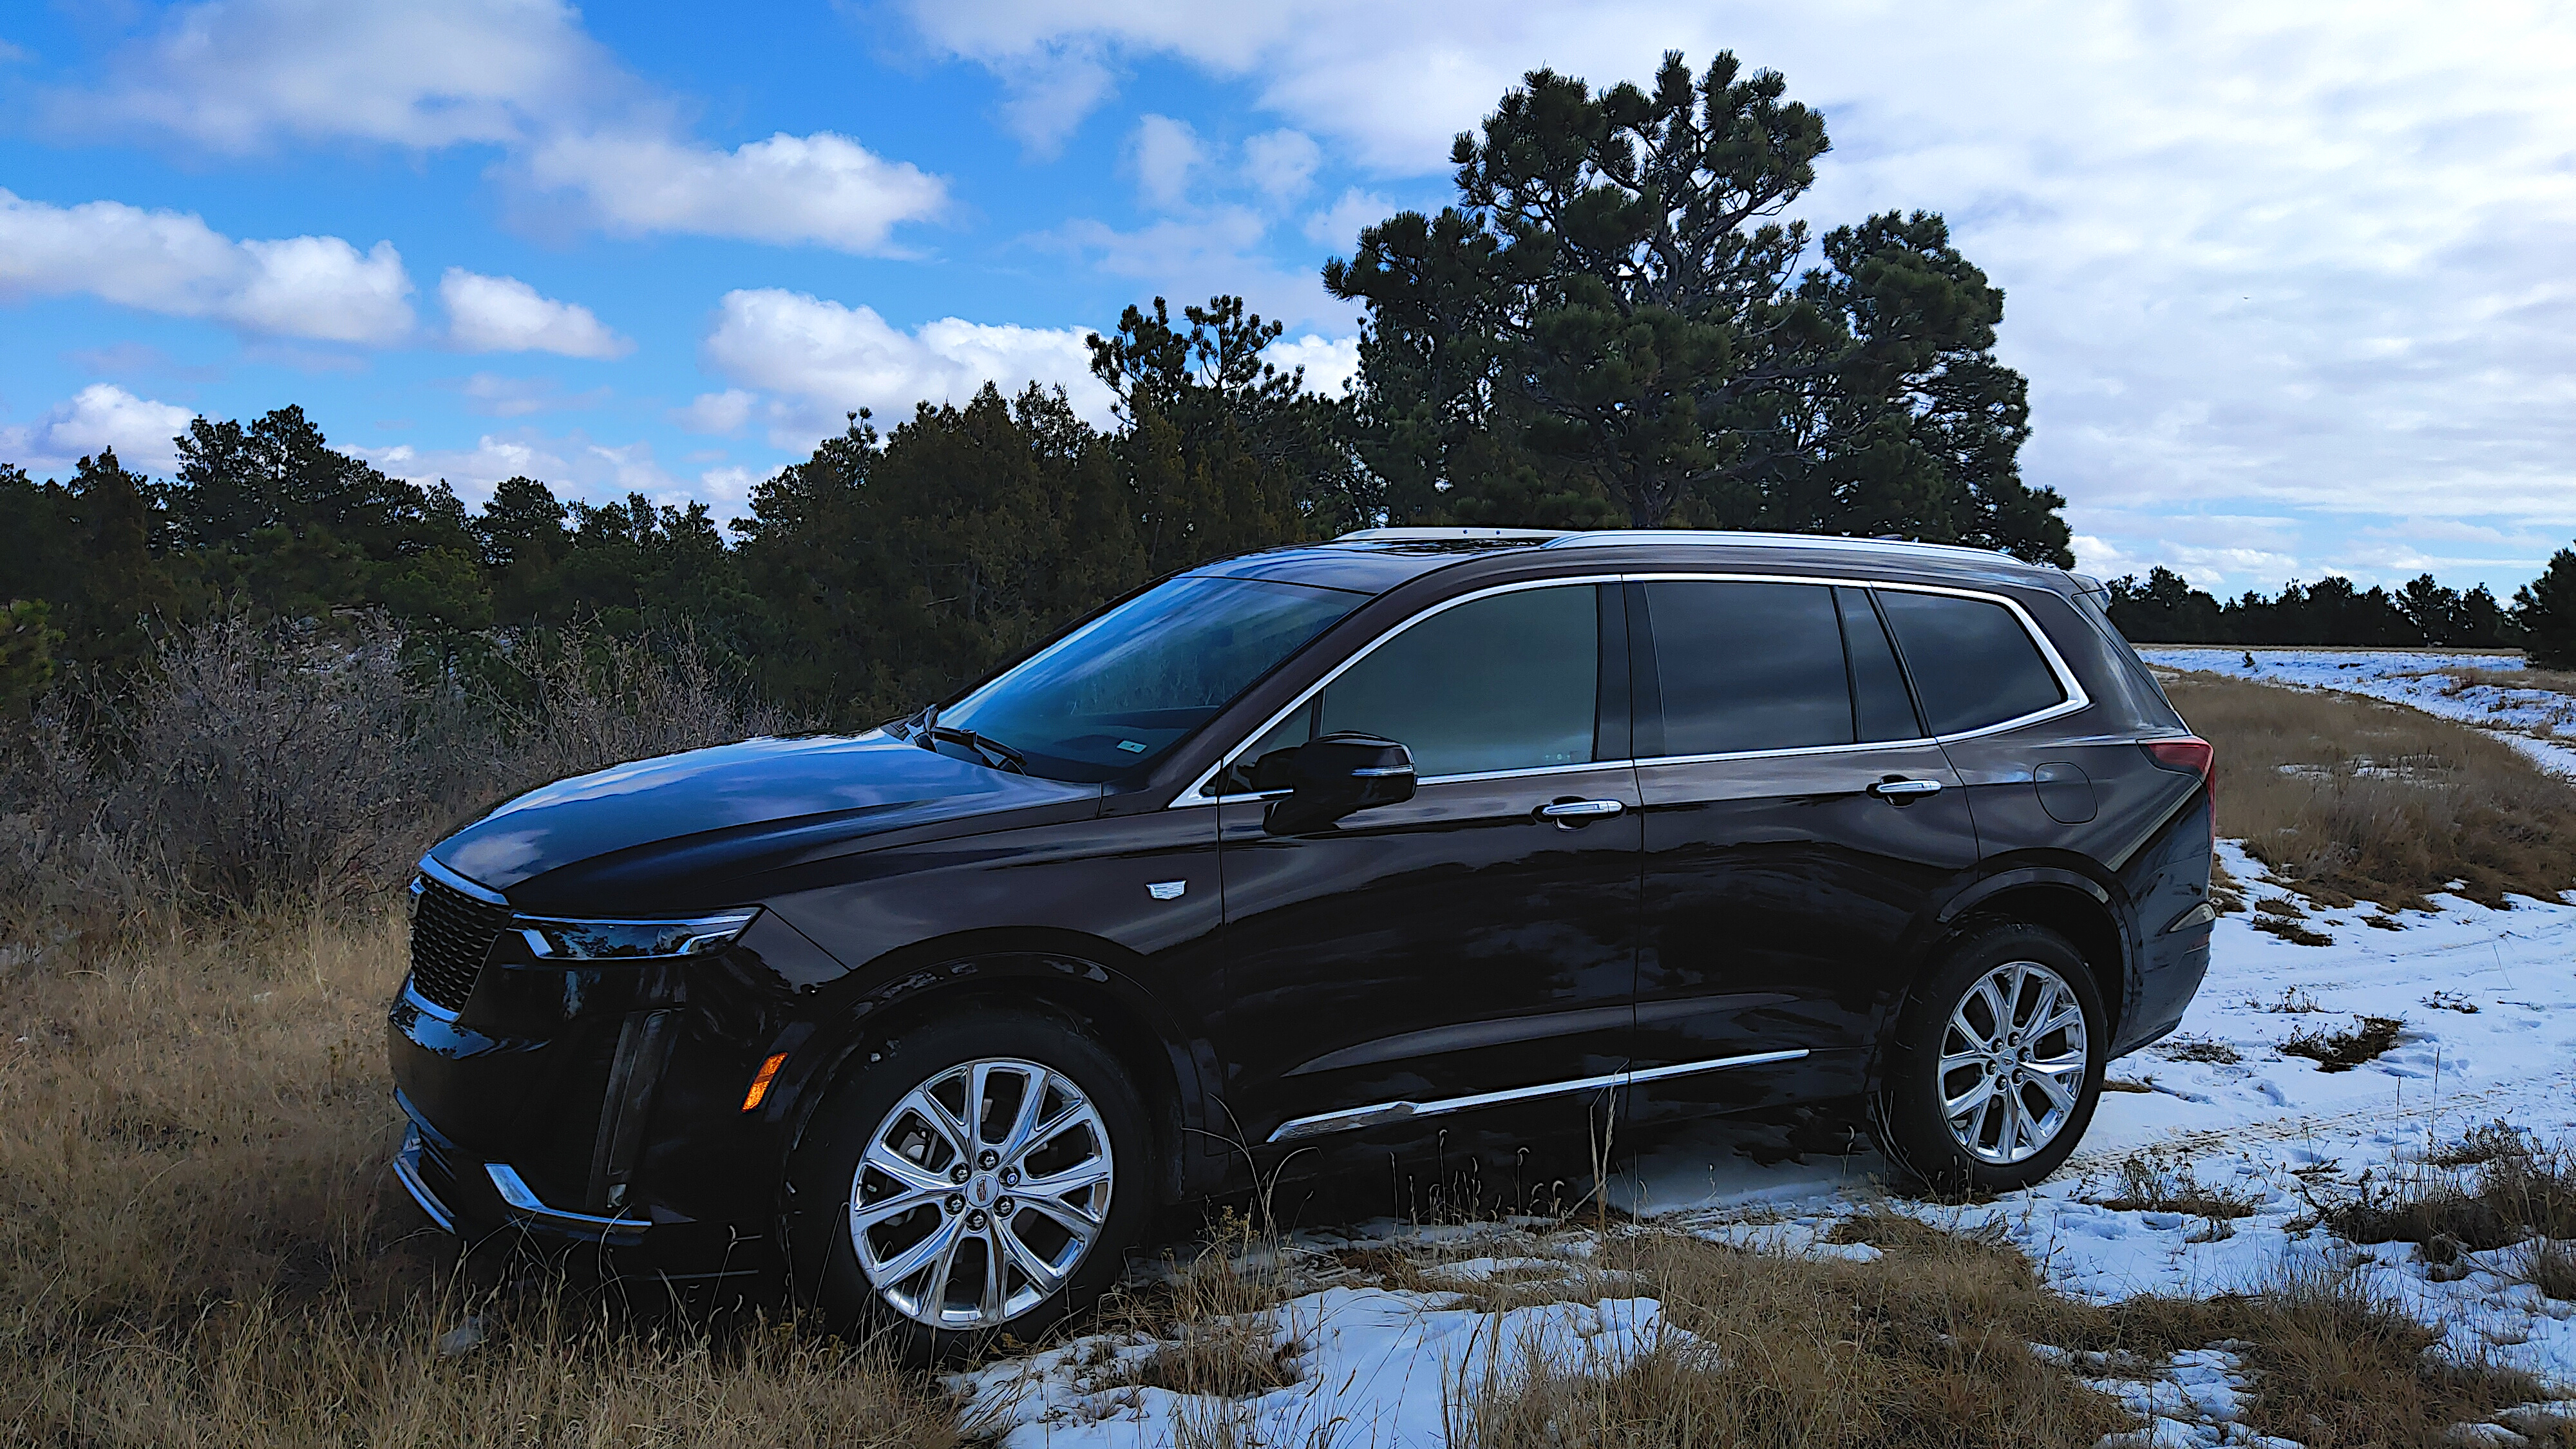 Review: 2020 Cadillac XT6 is American luxury in a three-row